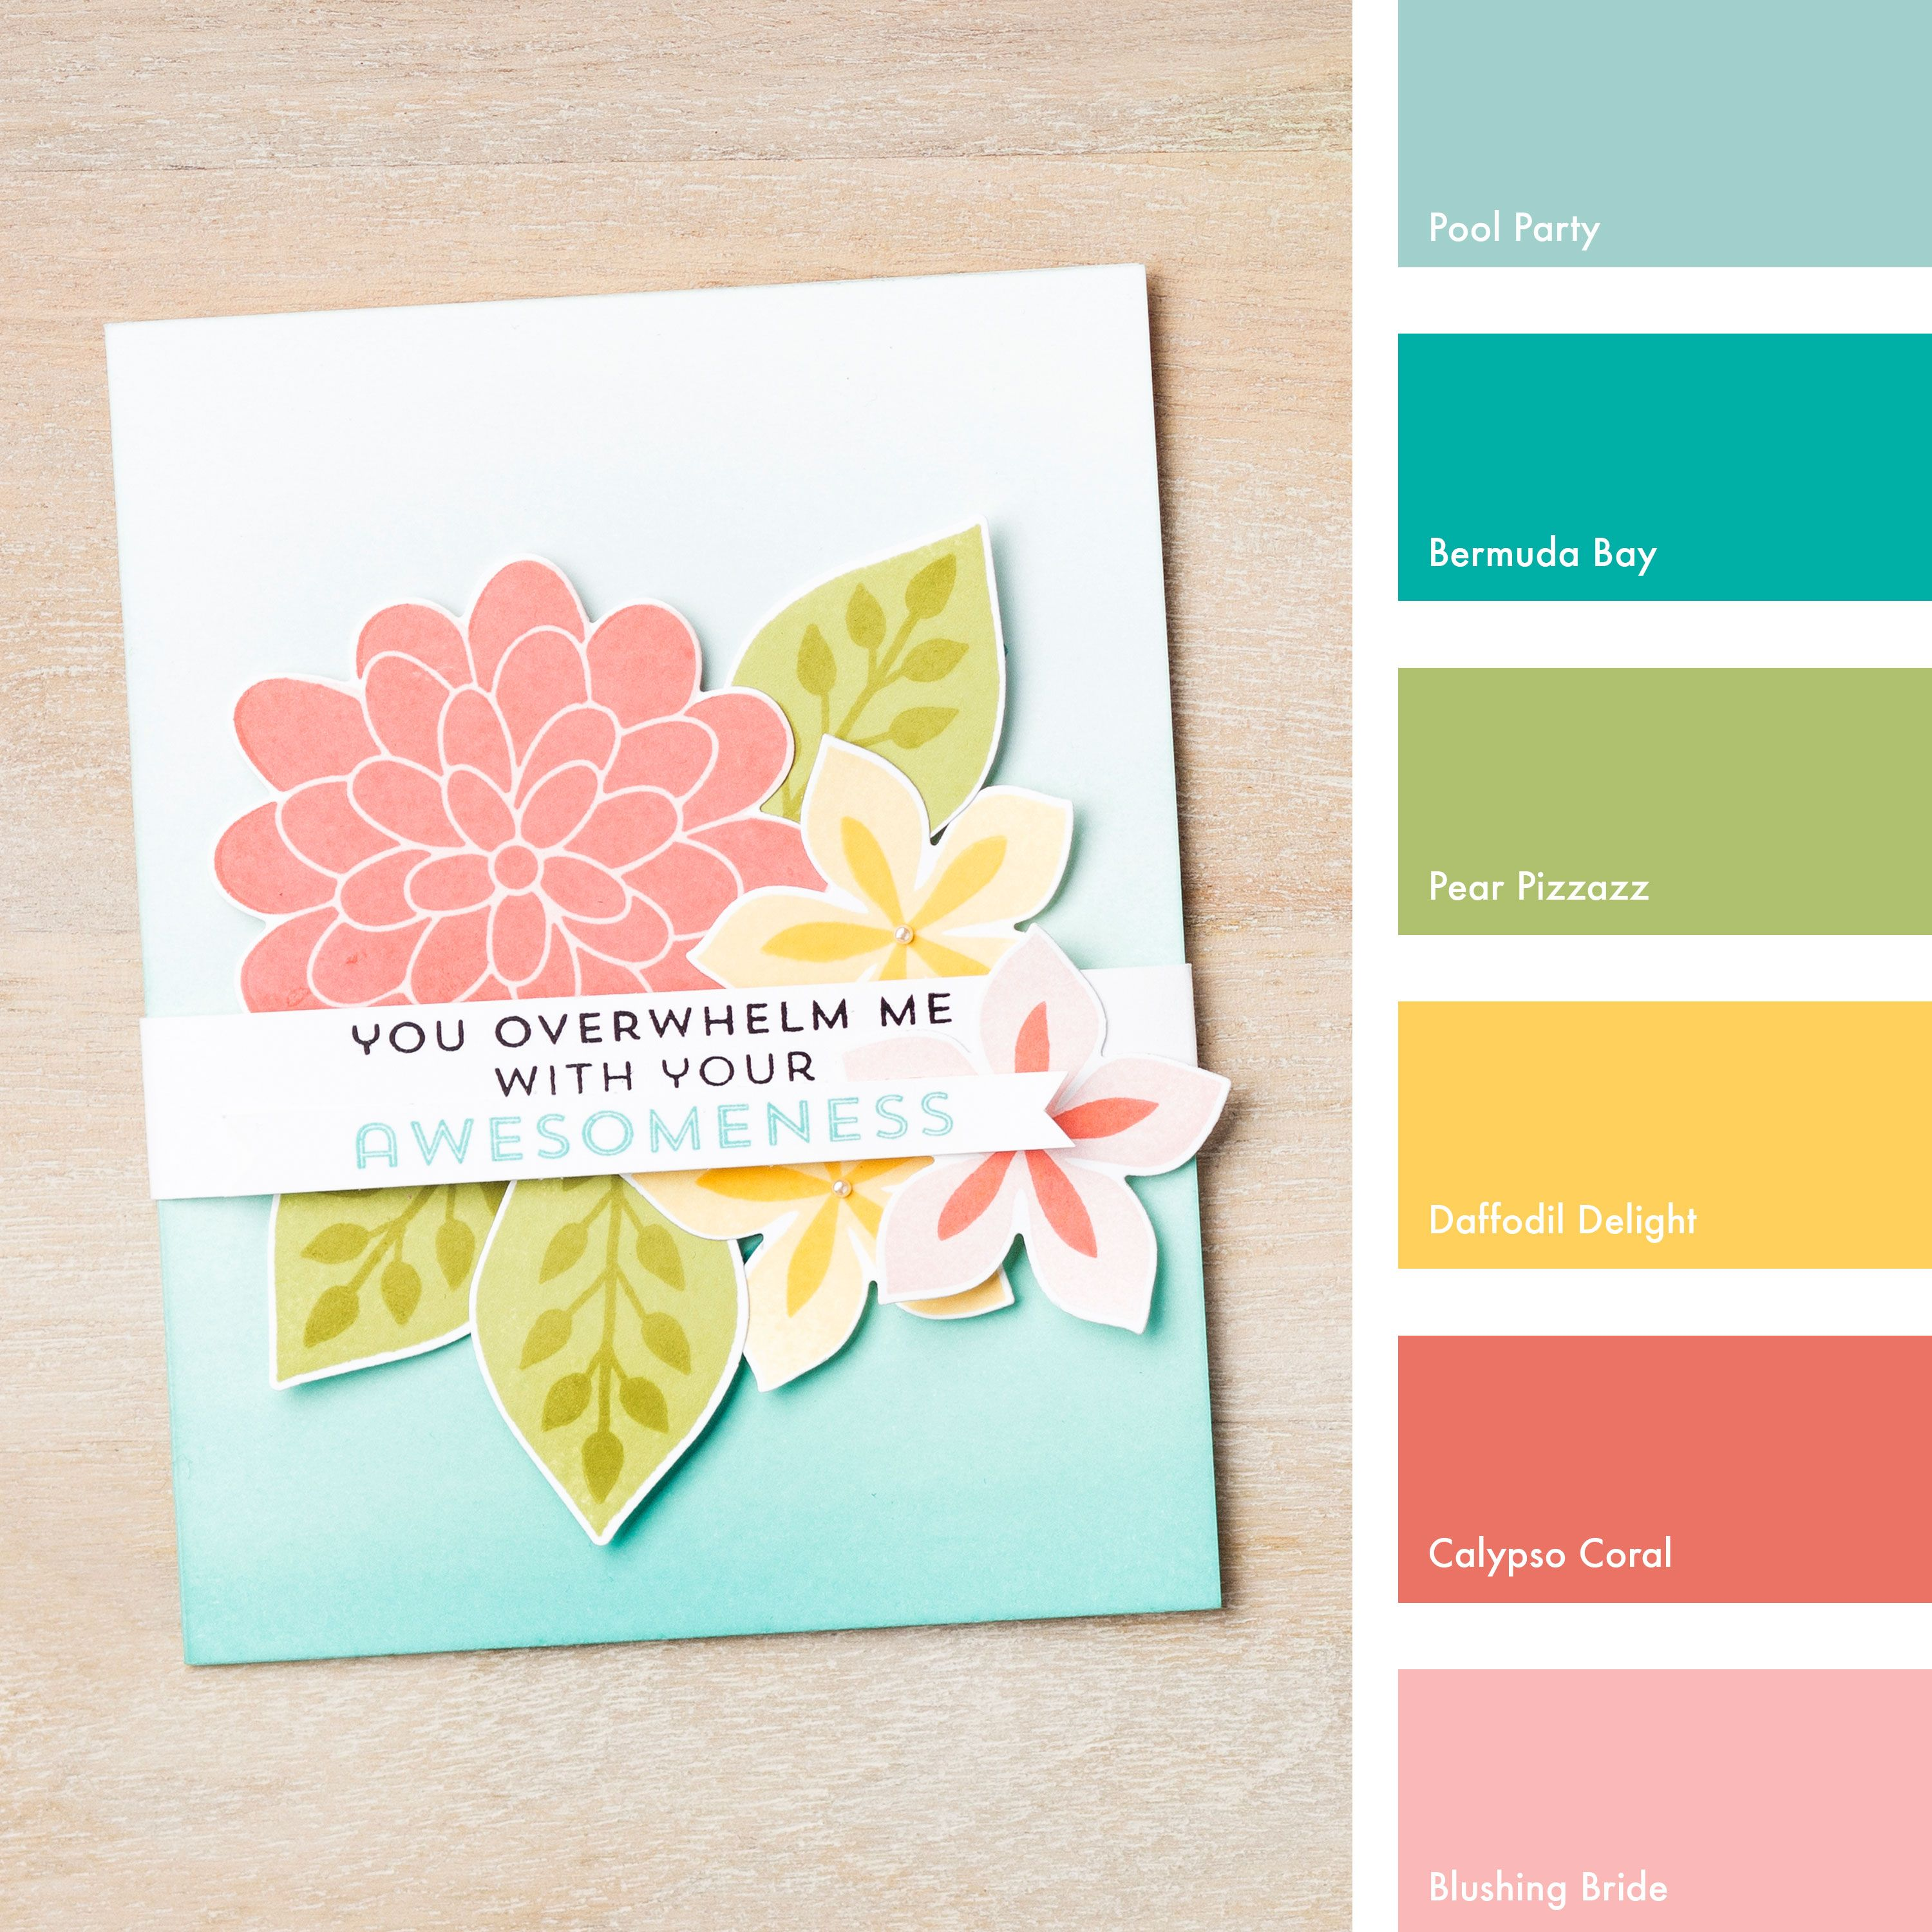 Pool Party, Bermuda Bay, Pear Pizzazz, Daffodil Delight, Calypso Coral & Blushing Bride #StampinUpColorCombos